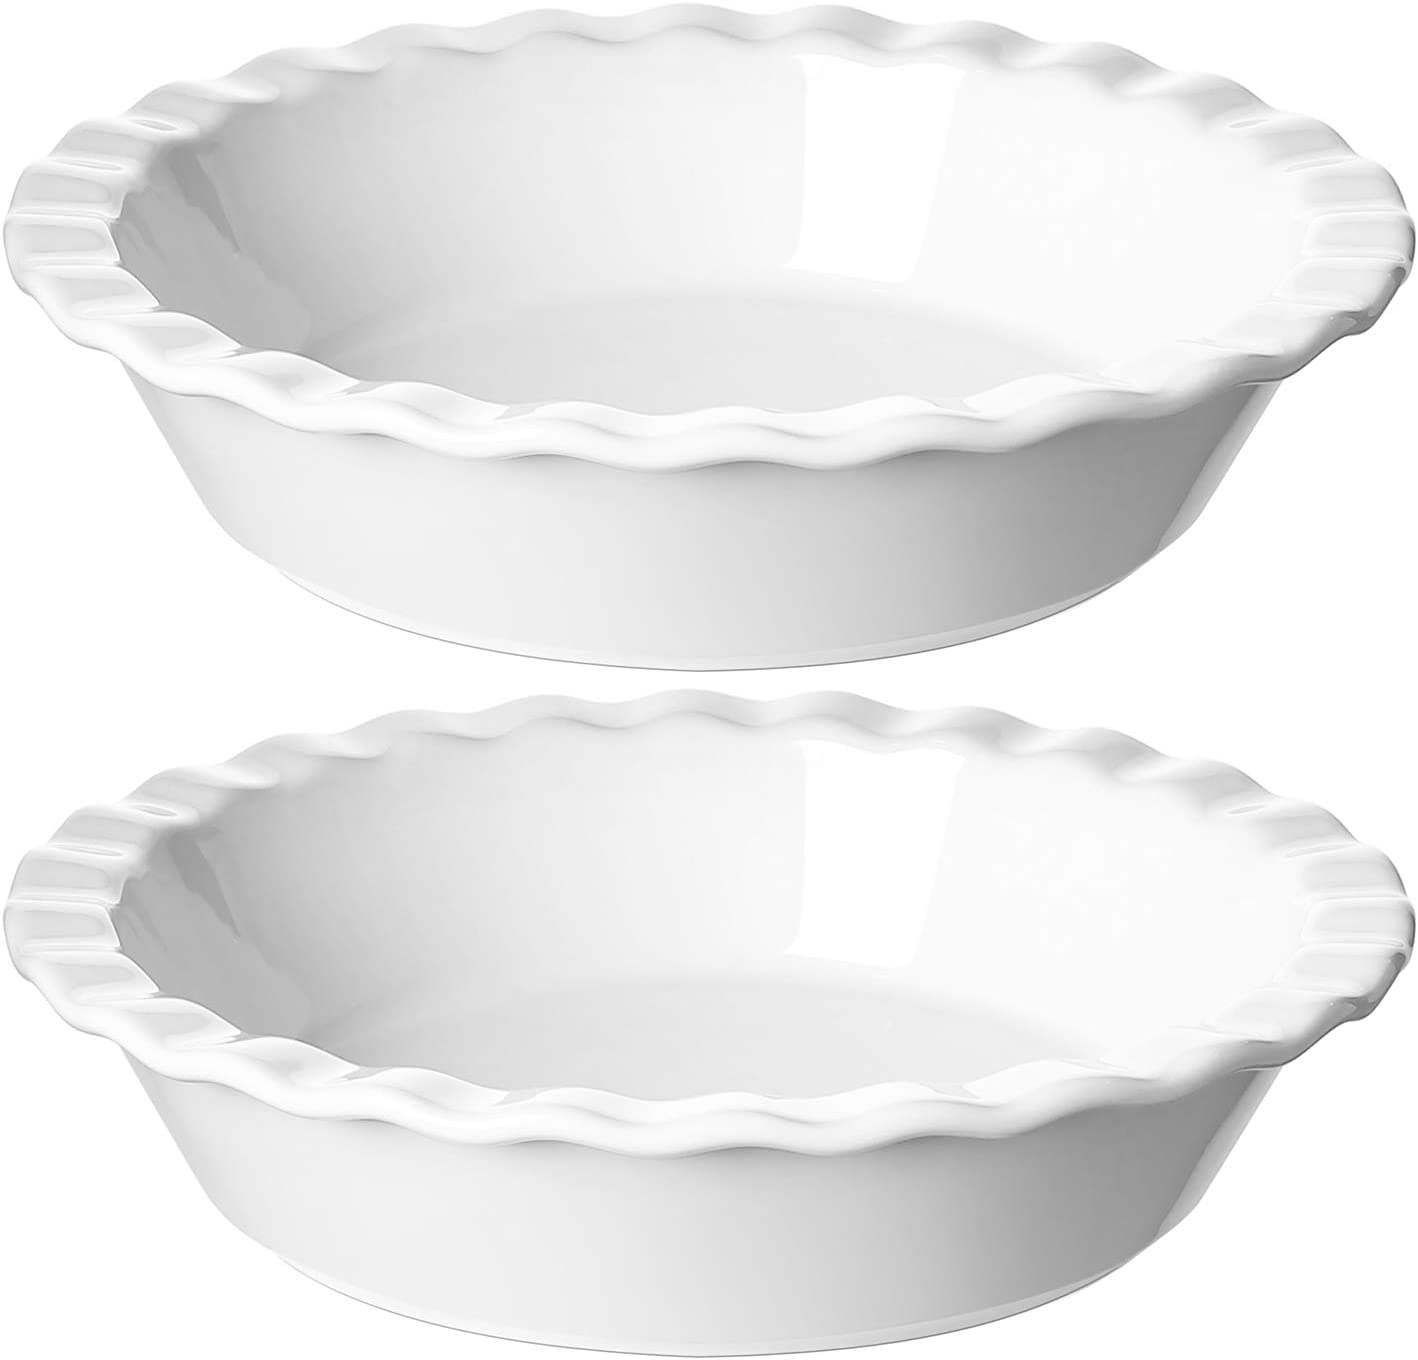 LE TAUCI Ceramic Pie Pans Plate for Baking, 9 inch Deep Dish Baking Dish, 52 ounce Bakeware for Apple Pecan Pie, Set of 2, White